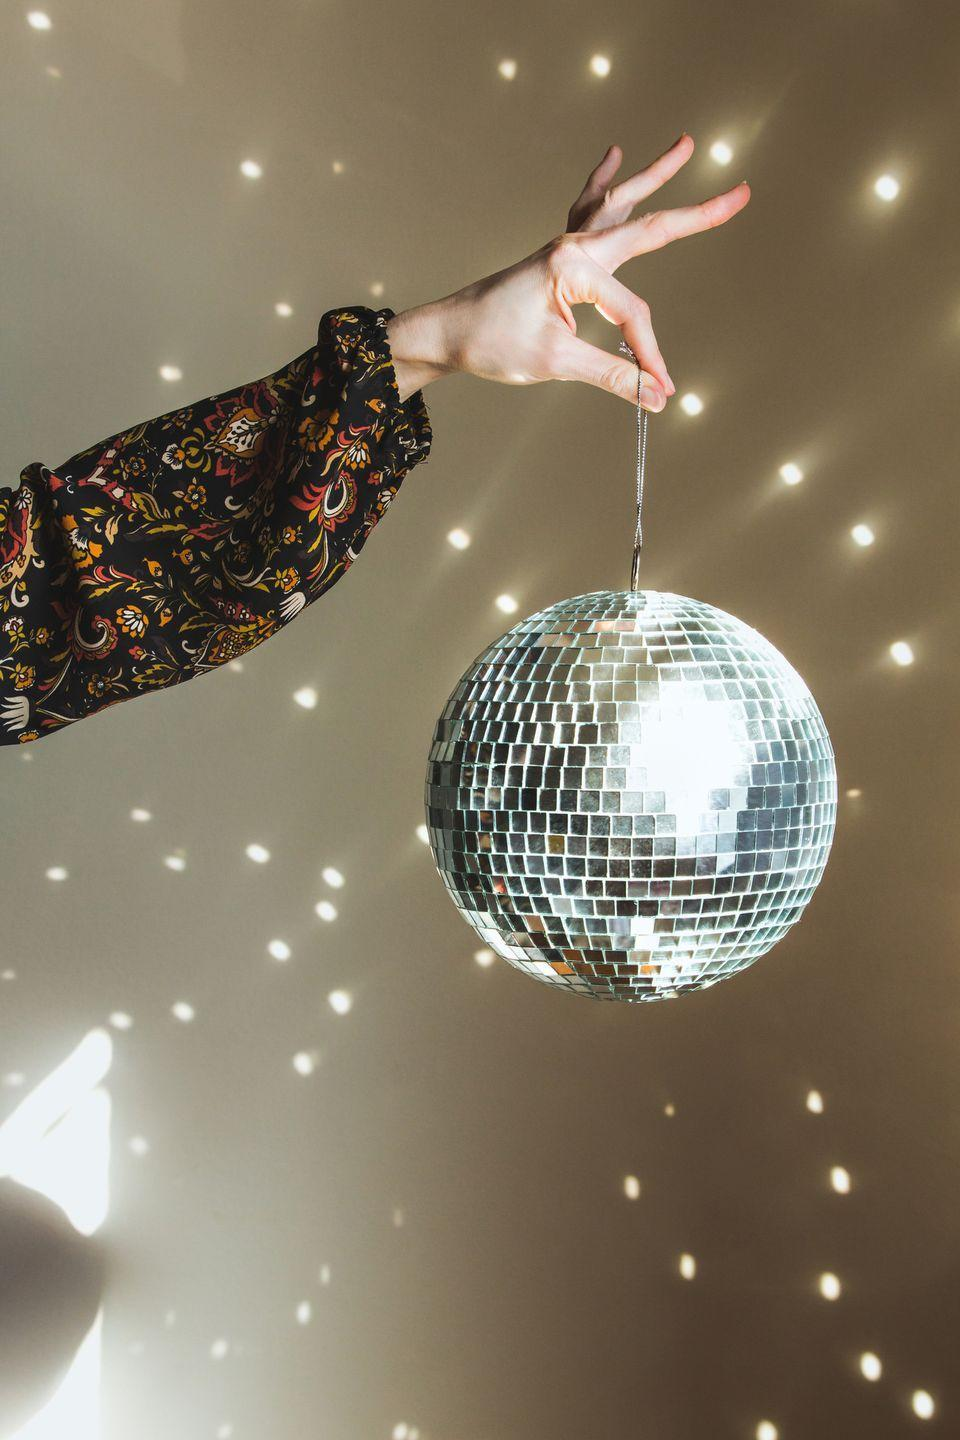 """<p>If you're looking to dance your way into the New Year, there's nothing more groovy than a disco-themed party, complete with a funky '70s music playlist, gold maxi dresses and platform shoes, and of course, the all-essential sparkly <a href=""""https://www.amazon.com/Rhode-Island-Novelty-Mirror-Order/dp/B004DIVTIC/ref=sr_1_8?keywords=disco+ball&qid=1575399629&sr=8-8&tag=syn-yahoo-20&ascsubtag=%5Bartid%7C10055.g.30105731%5Bsrc%7Cyahoo-us"""" rel=""""nofollow noopener"""" target=""""_blank"""" data-ylk=""""slk:disco ball"""" class=""""link rapid-noclick-resp"""">disco ball</a> to get the vibes going on the dance floor. </p>"""